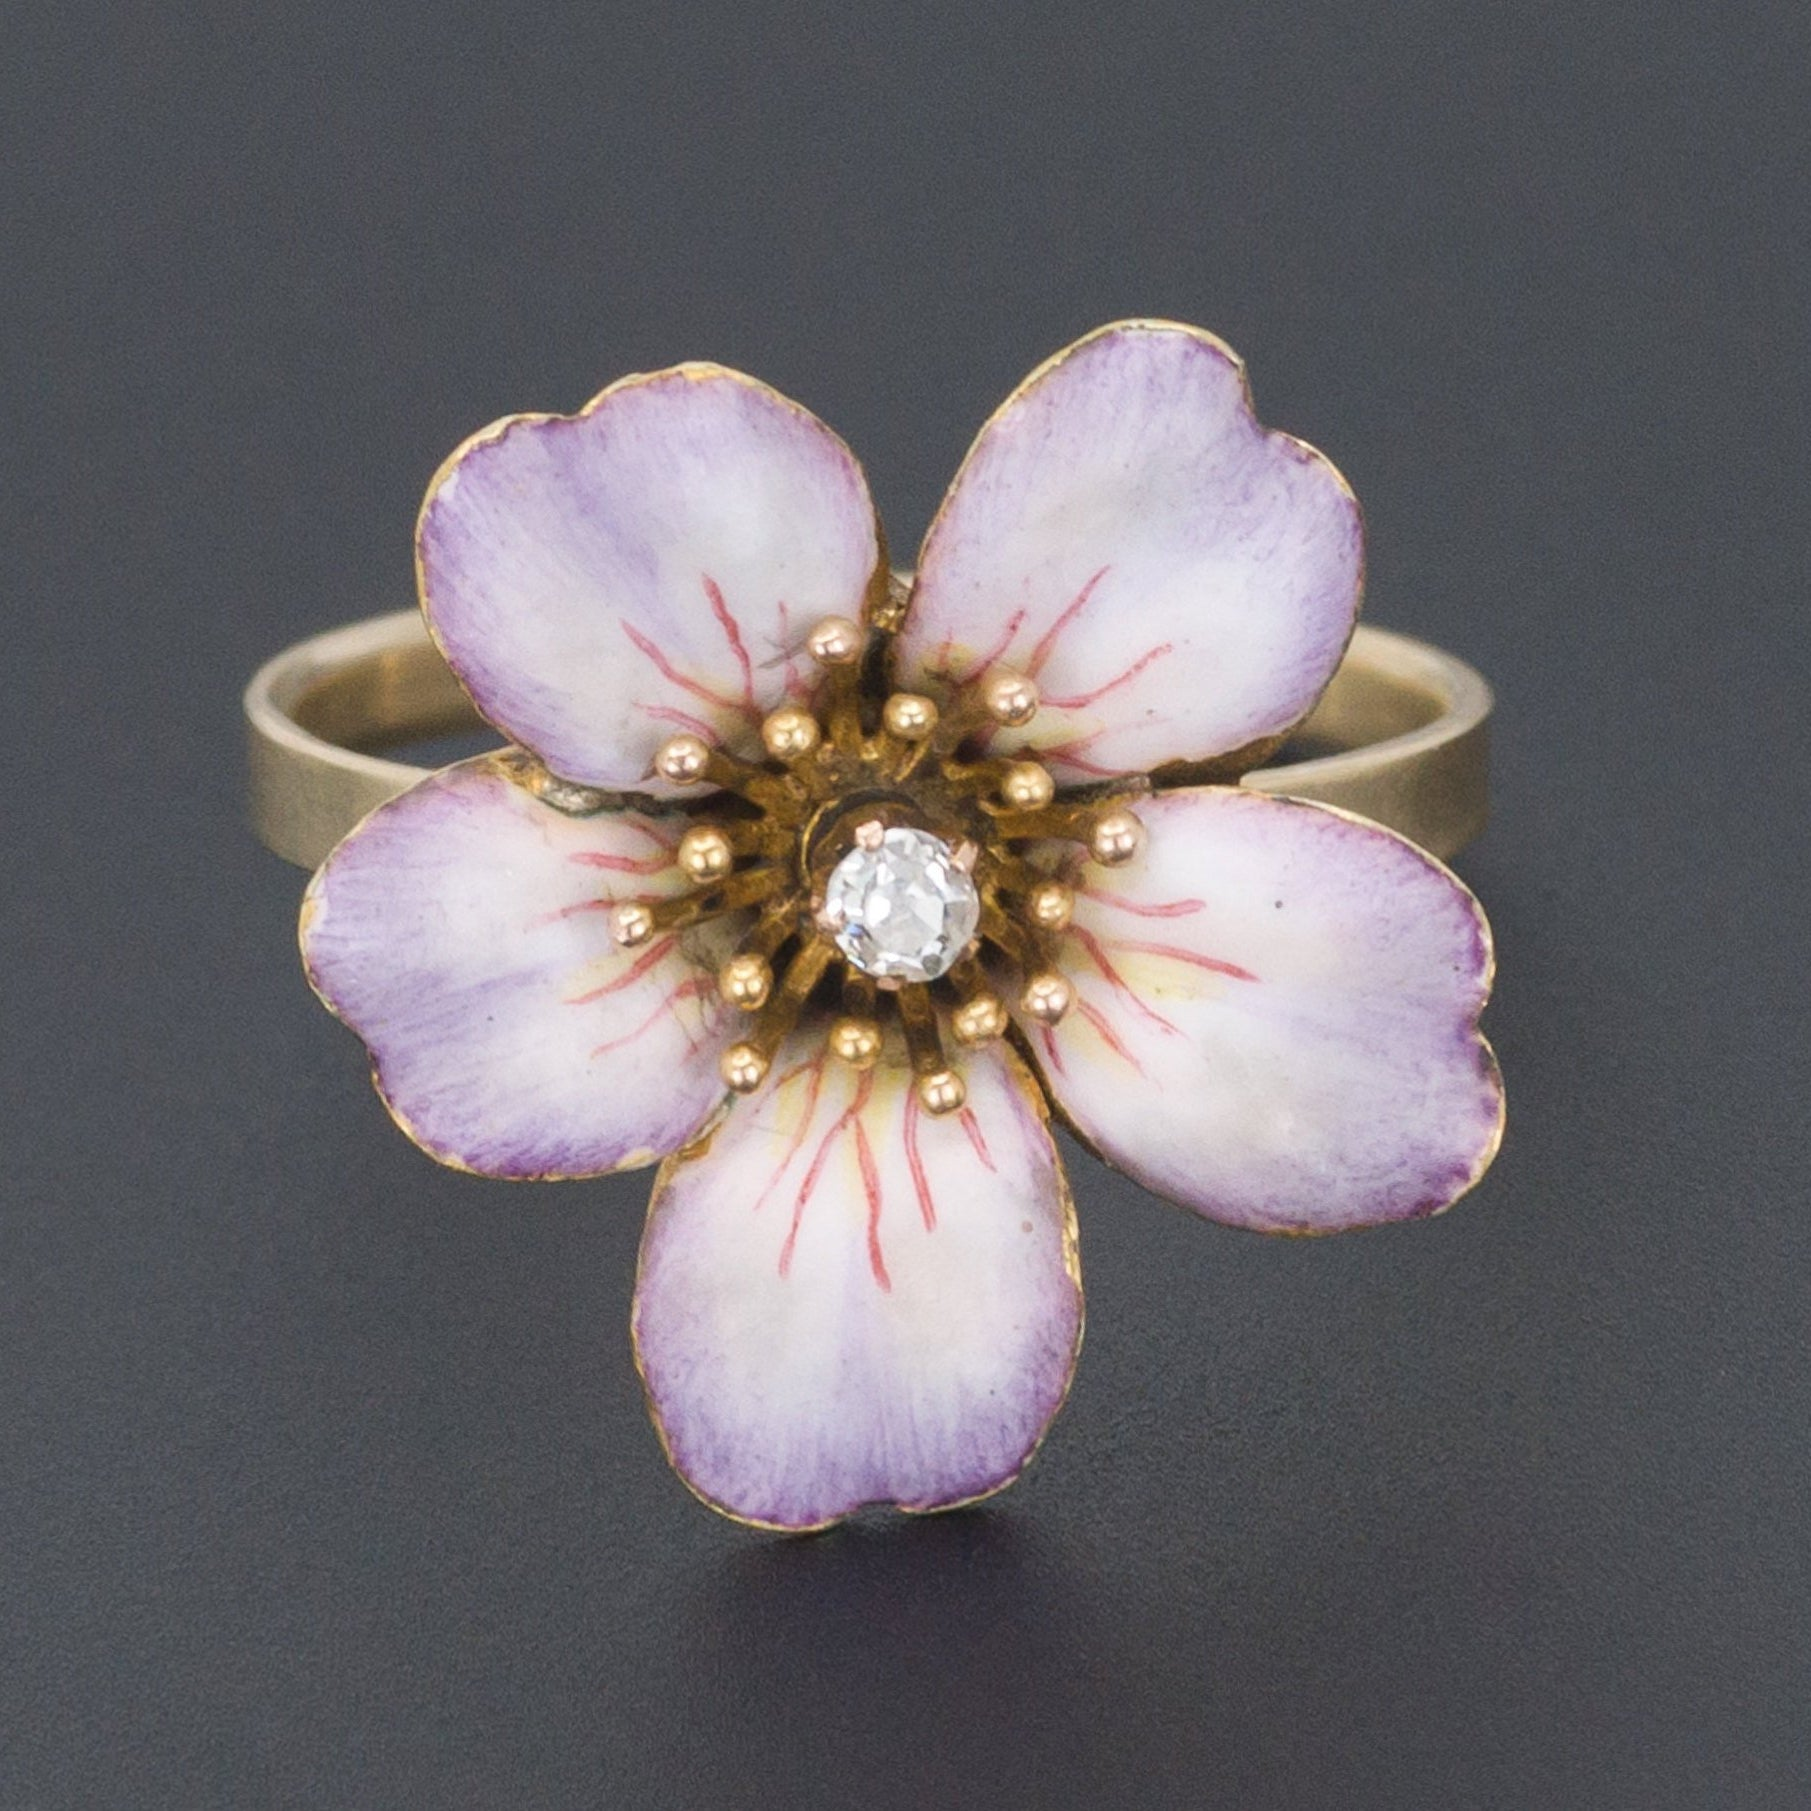 14k Gold Enamel and Diamond Flower Ring | Antique Pin Conversion Ring | 14k Gold Ring | Enamel Flower Ring | Diamond Ring